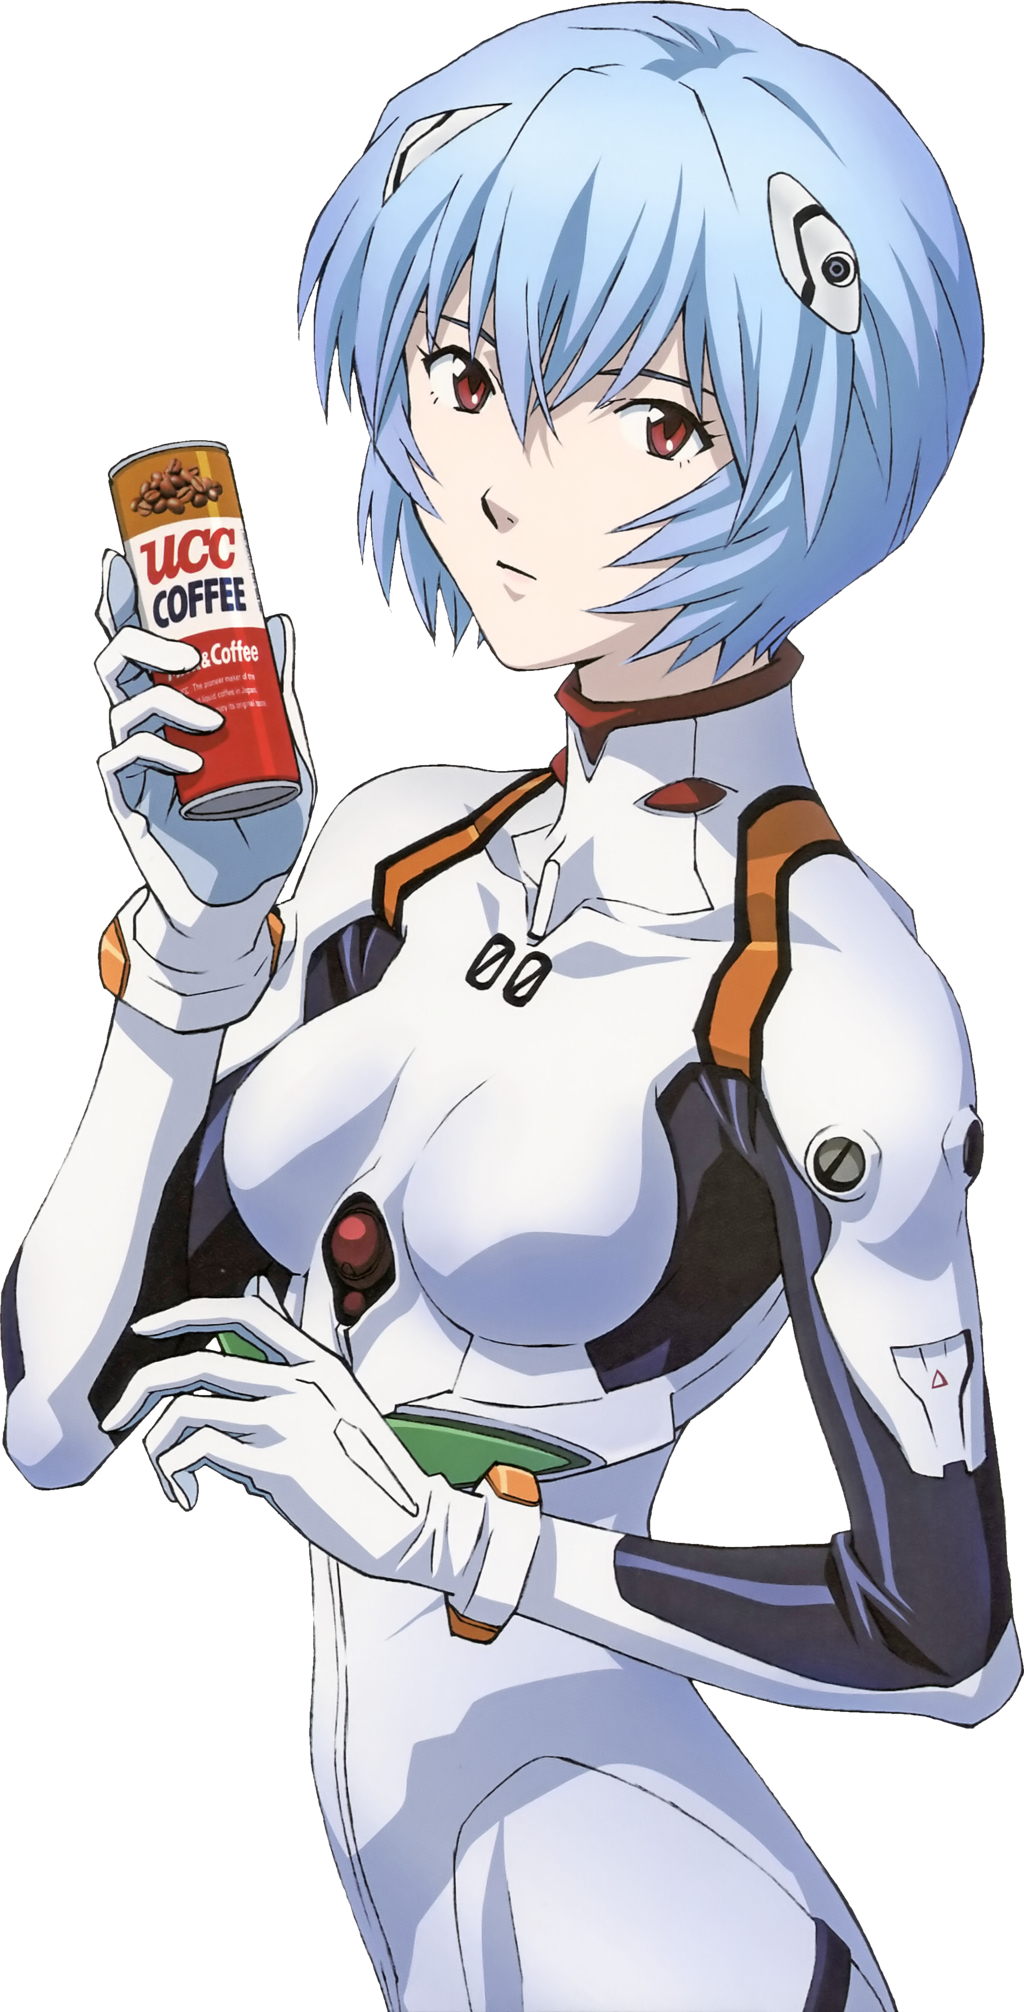 Neon Genesis Evangelion Rei Ayanami By Hes6789 On Deviantart Evangelion Neon Genesis Evangelion Rei Ayanami